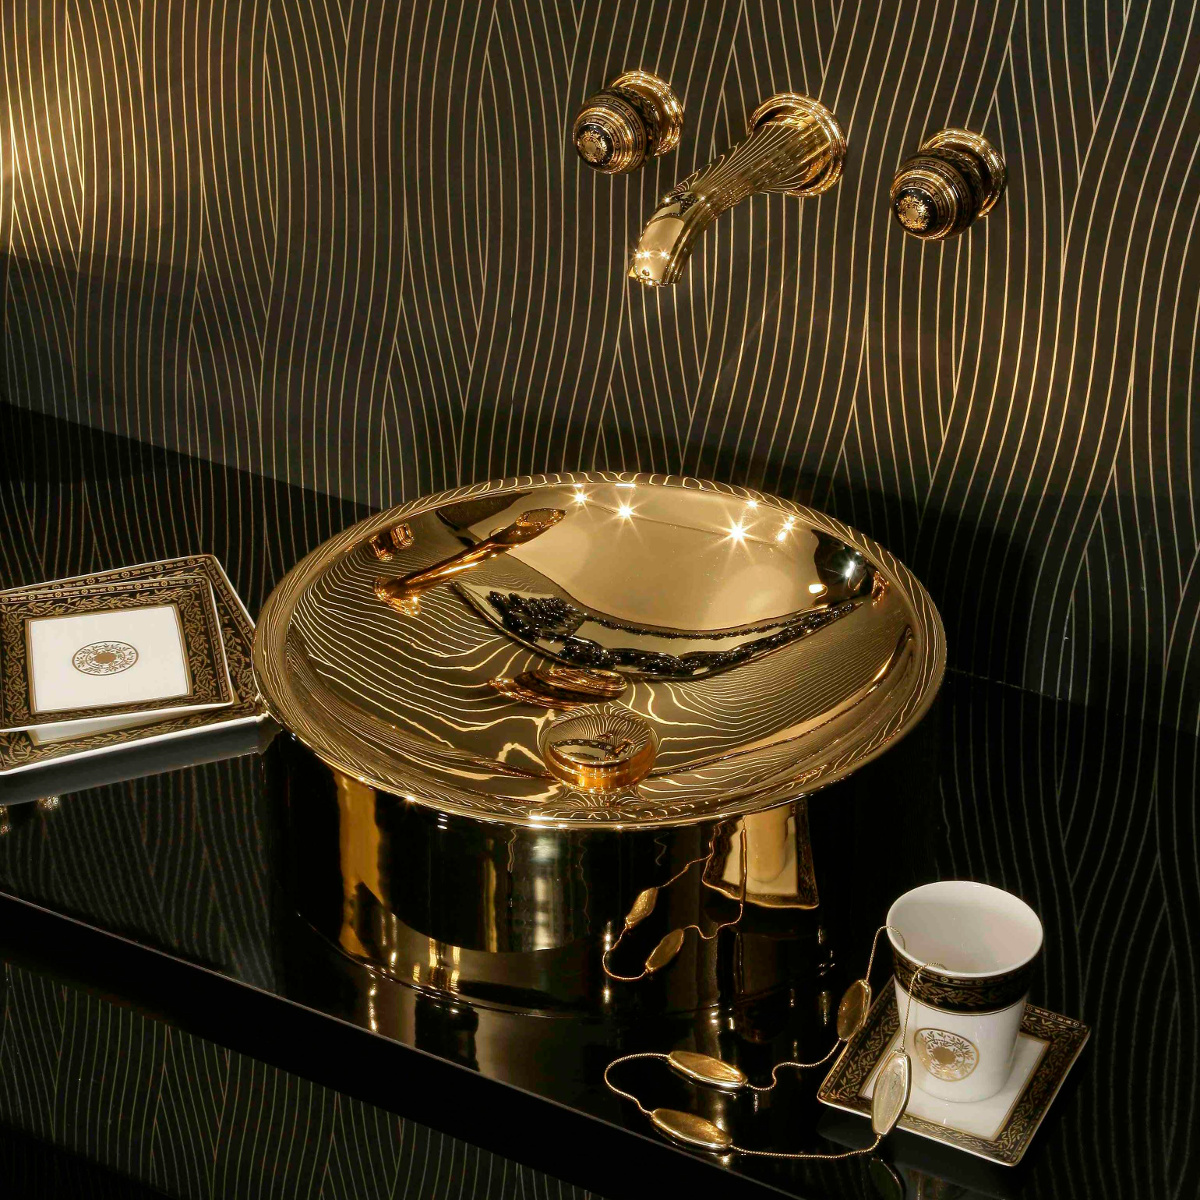 THG Paris Decorative Luxury Plumbing